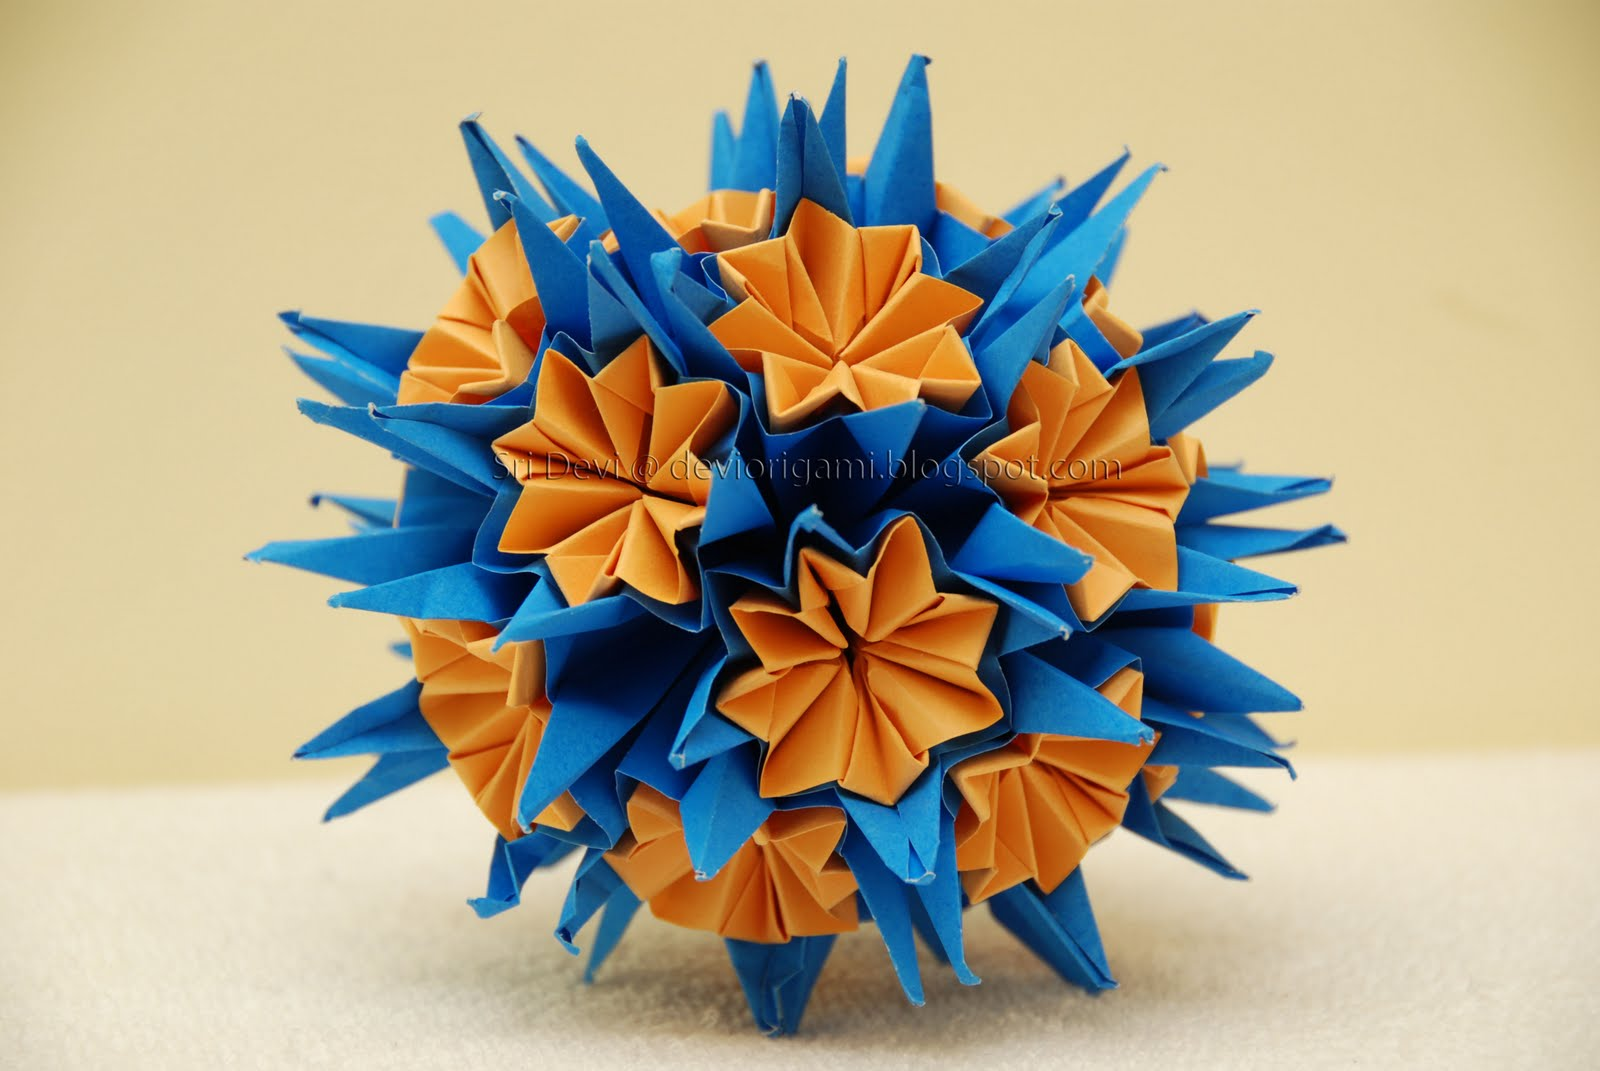 MODEL MODULAR PAPER SIZE 40 SAME UNITS DIFFICULTY LEVEL INTERMEDIATE DIAGRAMS KUSUDAMA BALL ORIGAMI